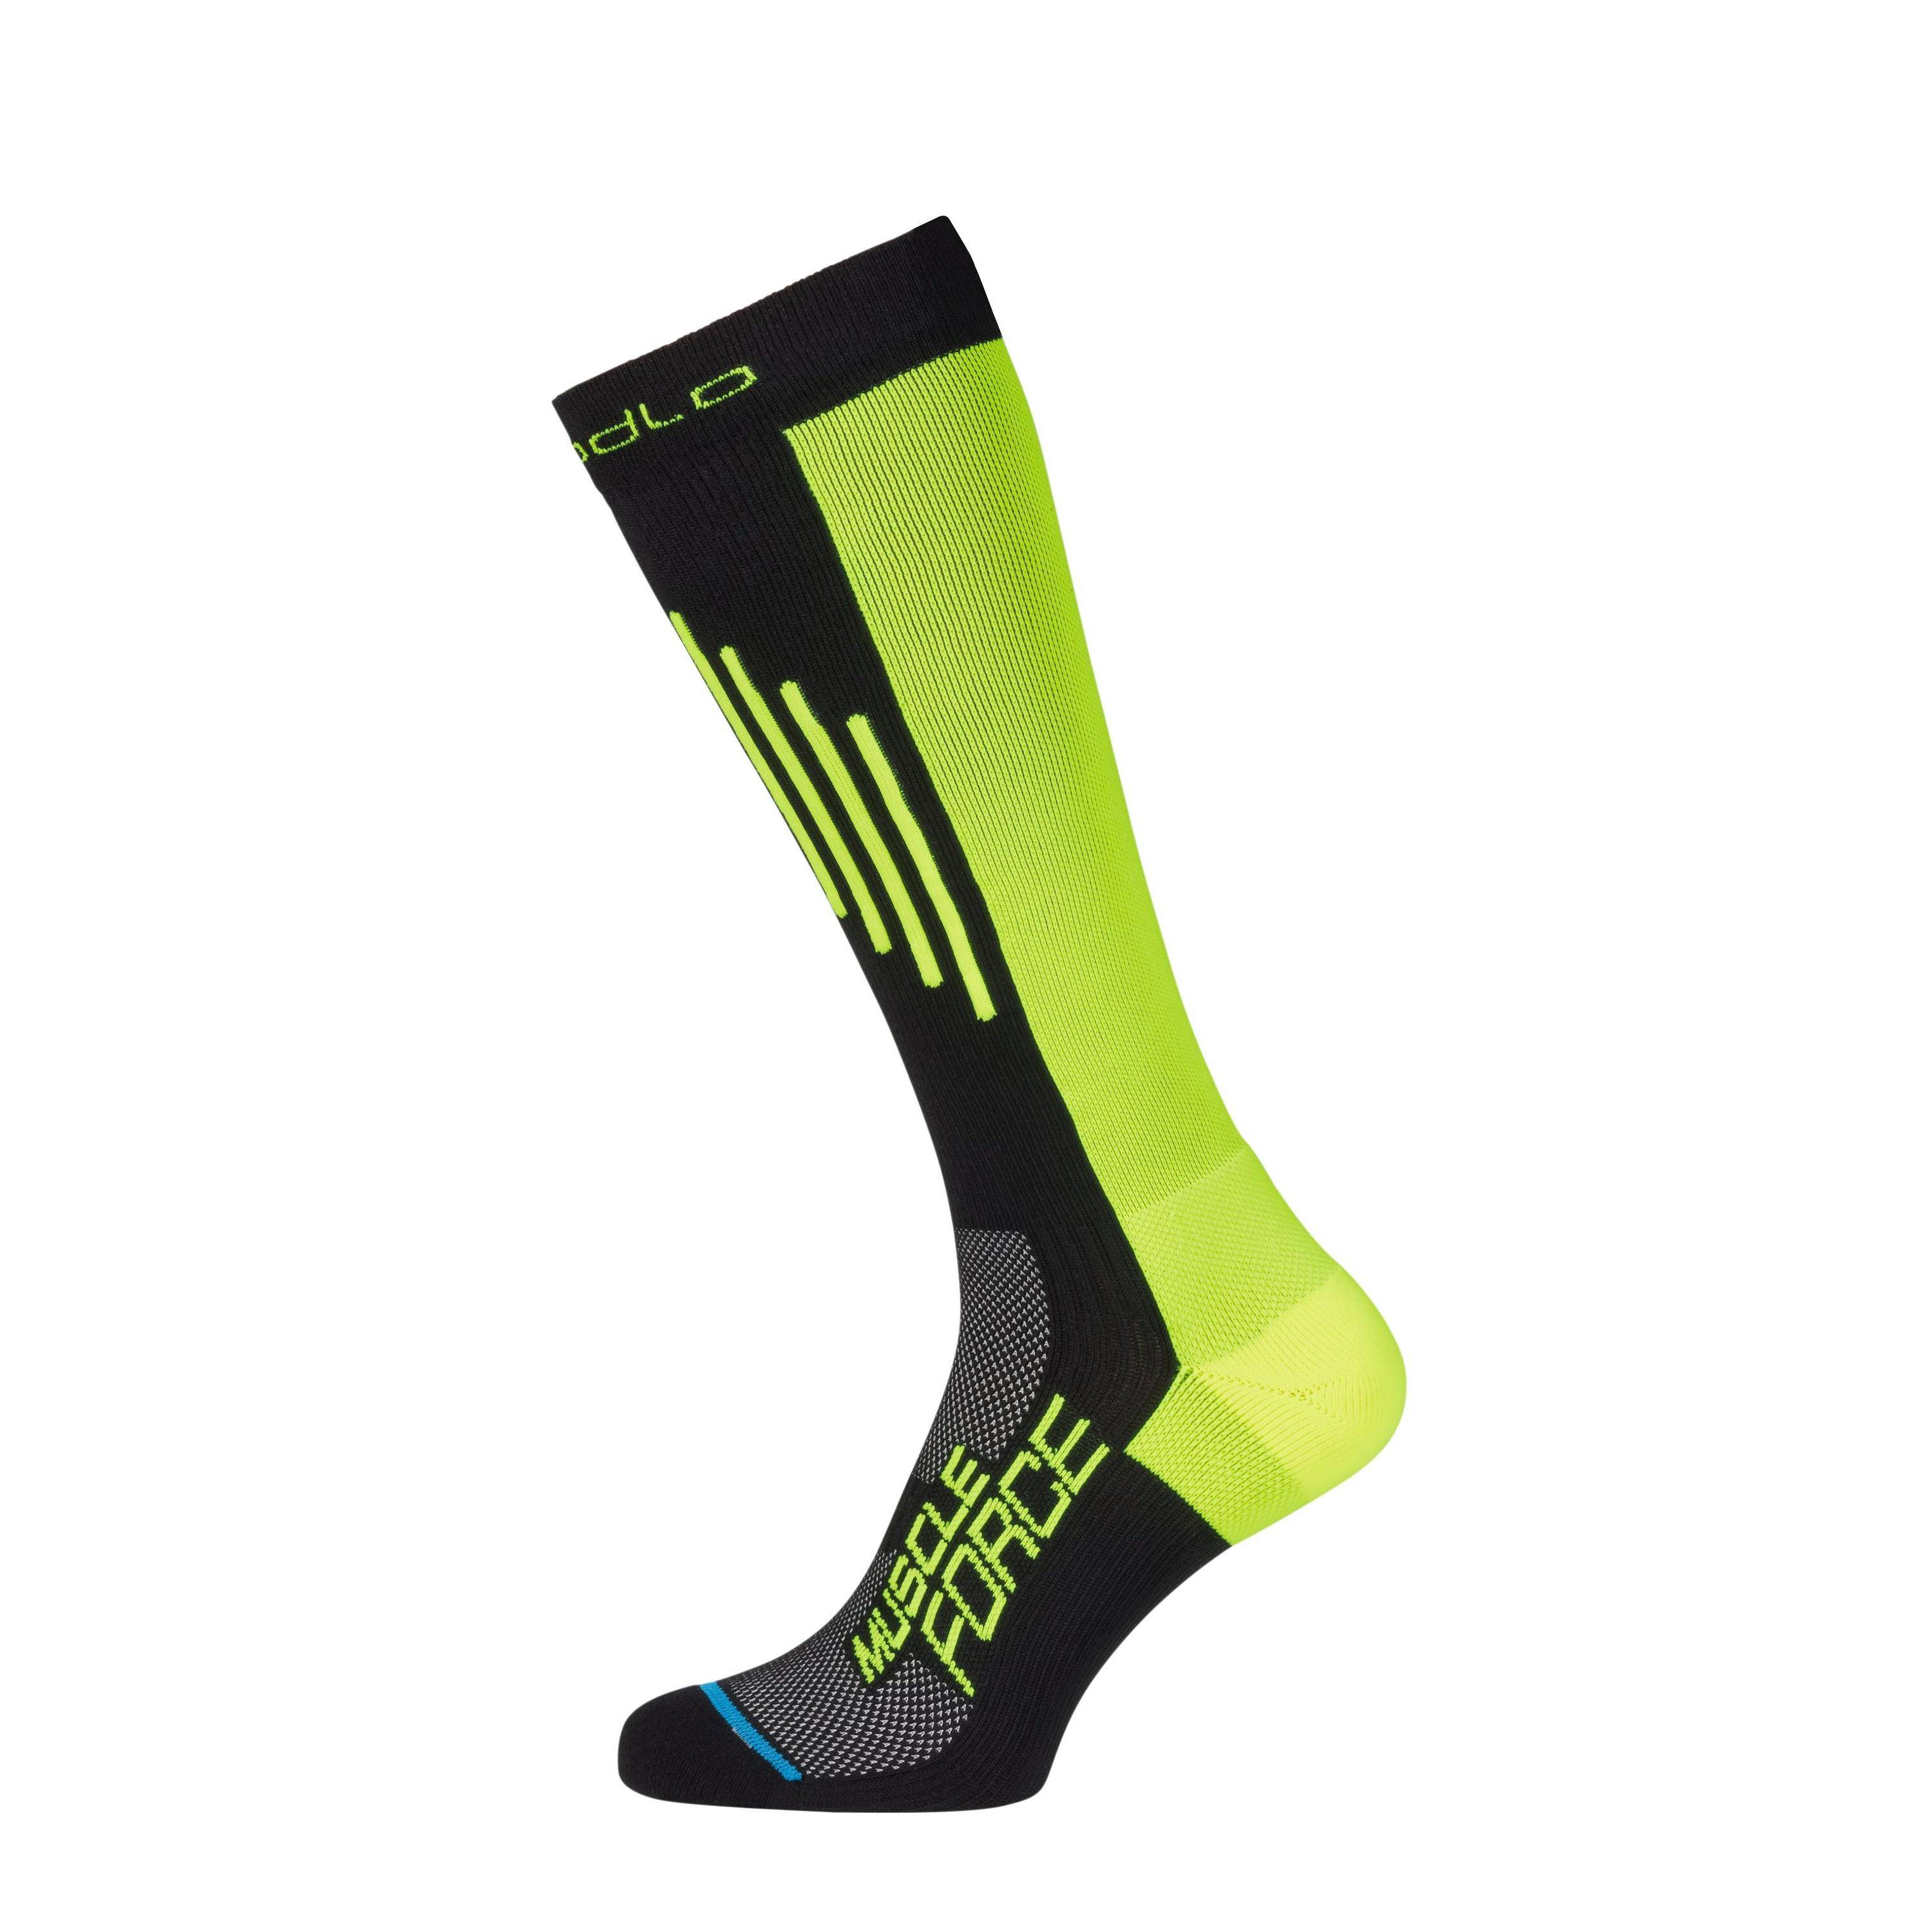 Odlo Chaussettes ultra-hautes MUSCLE FORCE LIGHT black - safety yellow taille: 36-38